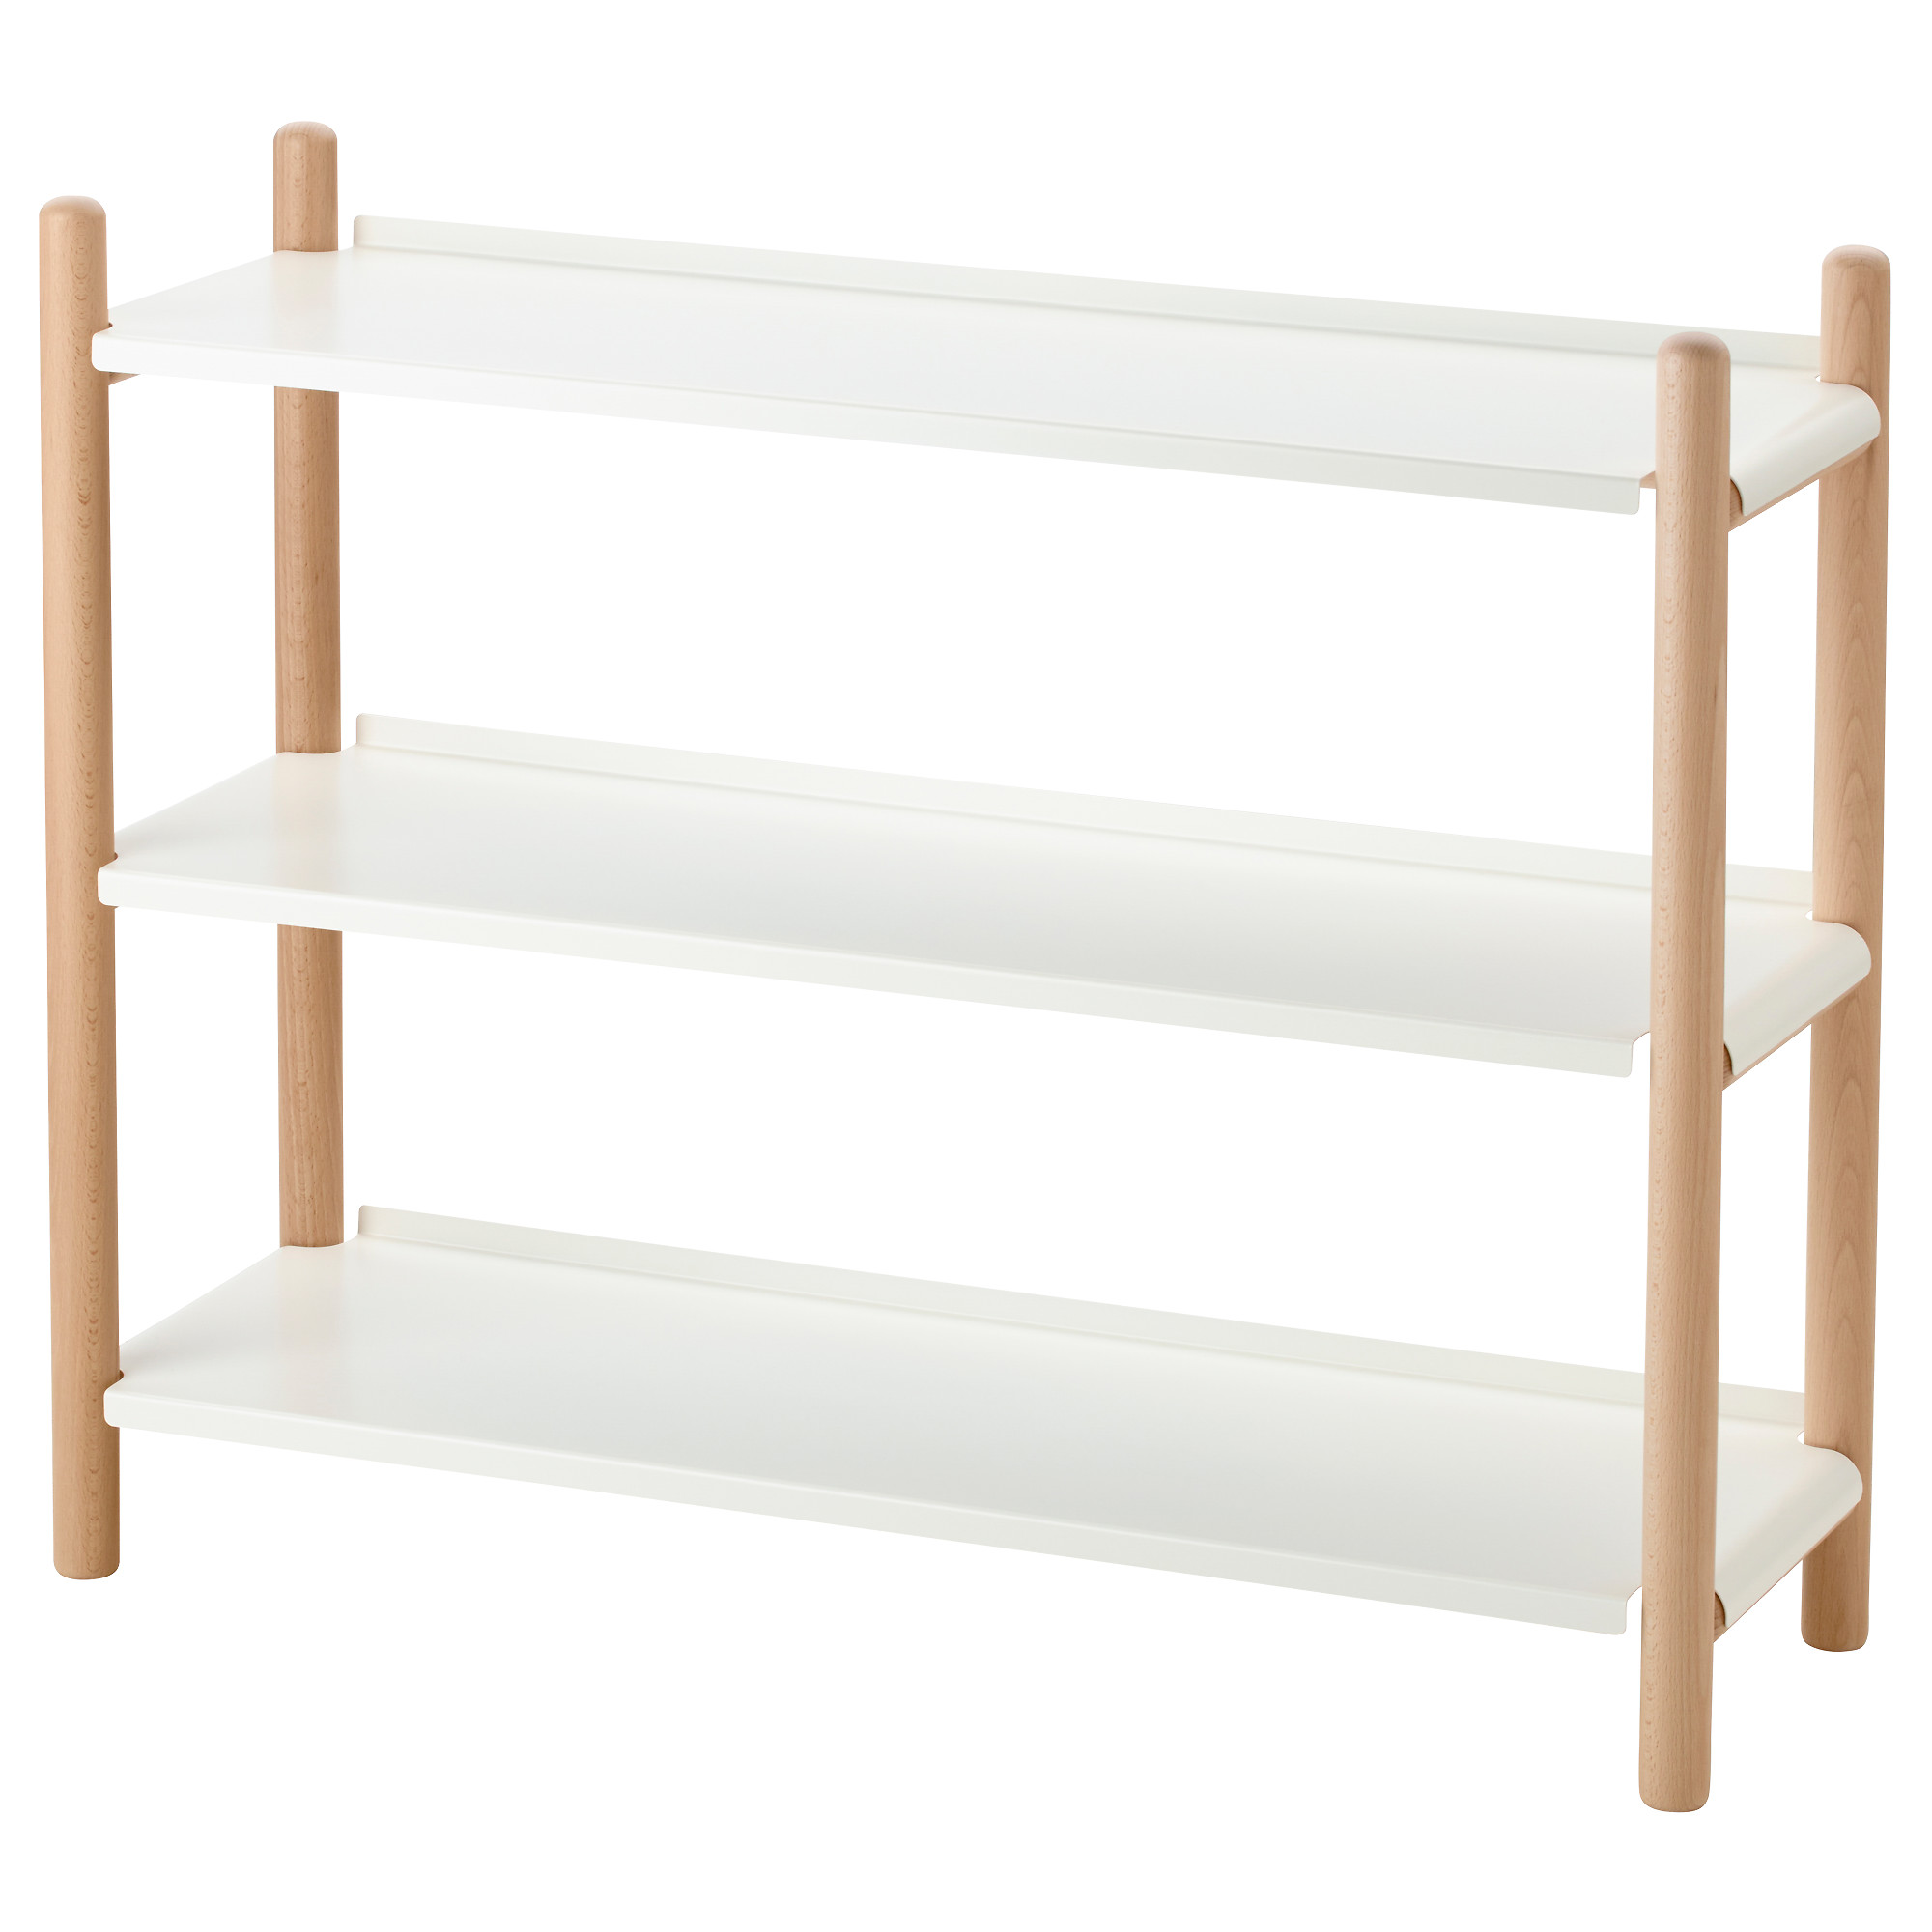 IKEA PS 2017 shelf unit  beech  white Width  35 3 8. Bookshelves   Bookcases   IKEA